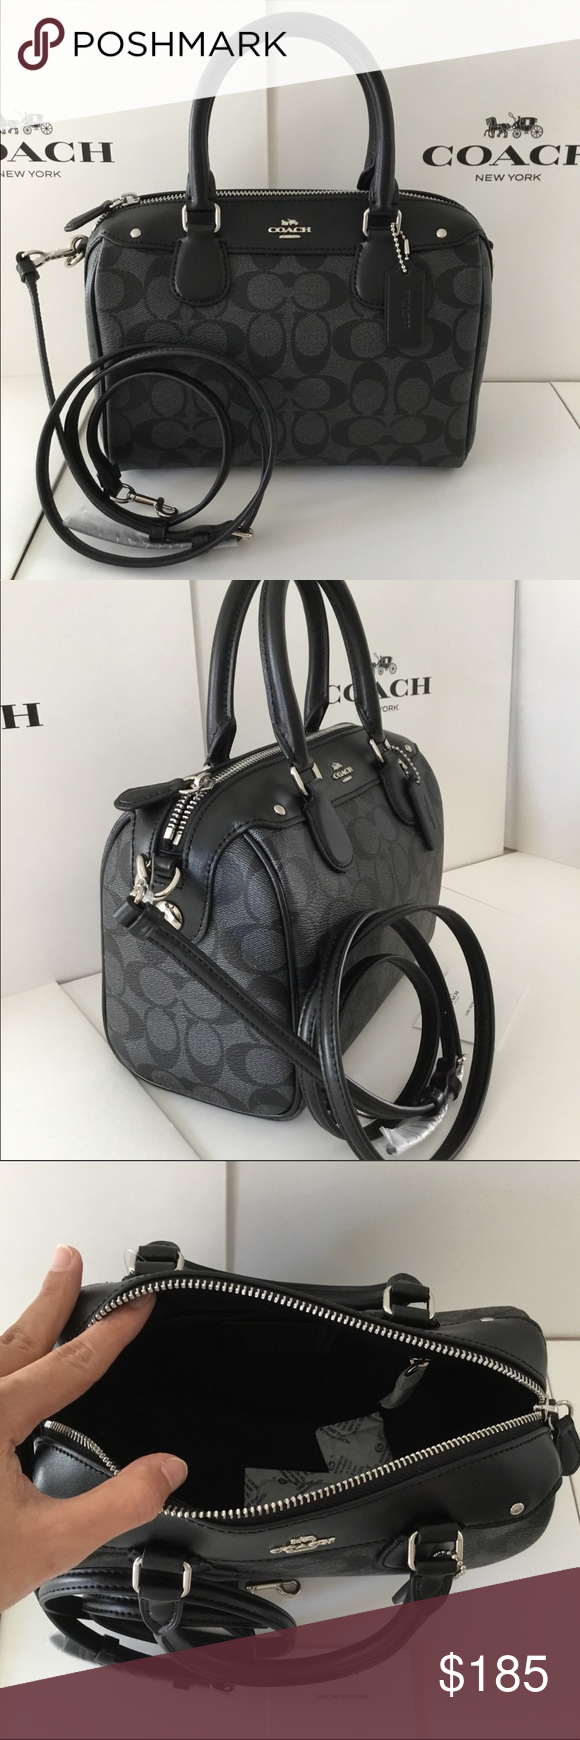 🌺Authentic Coach Signature Mini Bennett Satchel. ✅ The bag is brand new  and original from Coach factory store. They re perfect and comes with Coach  care ... 59372f66f376f